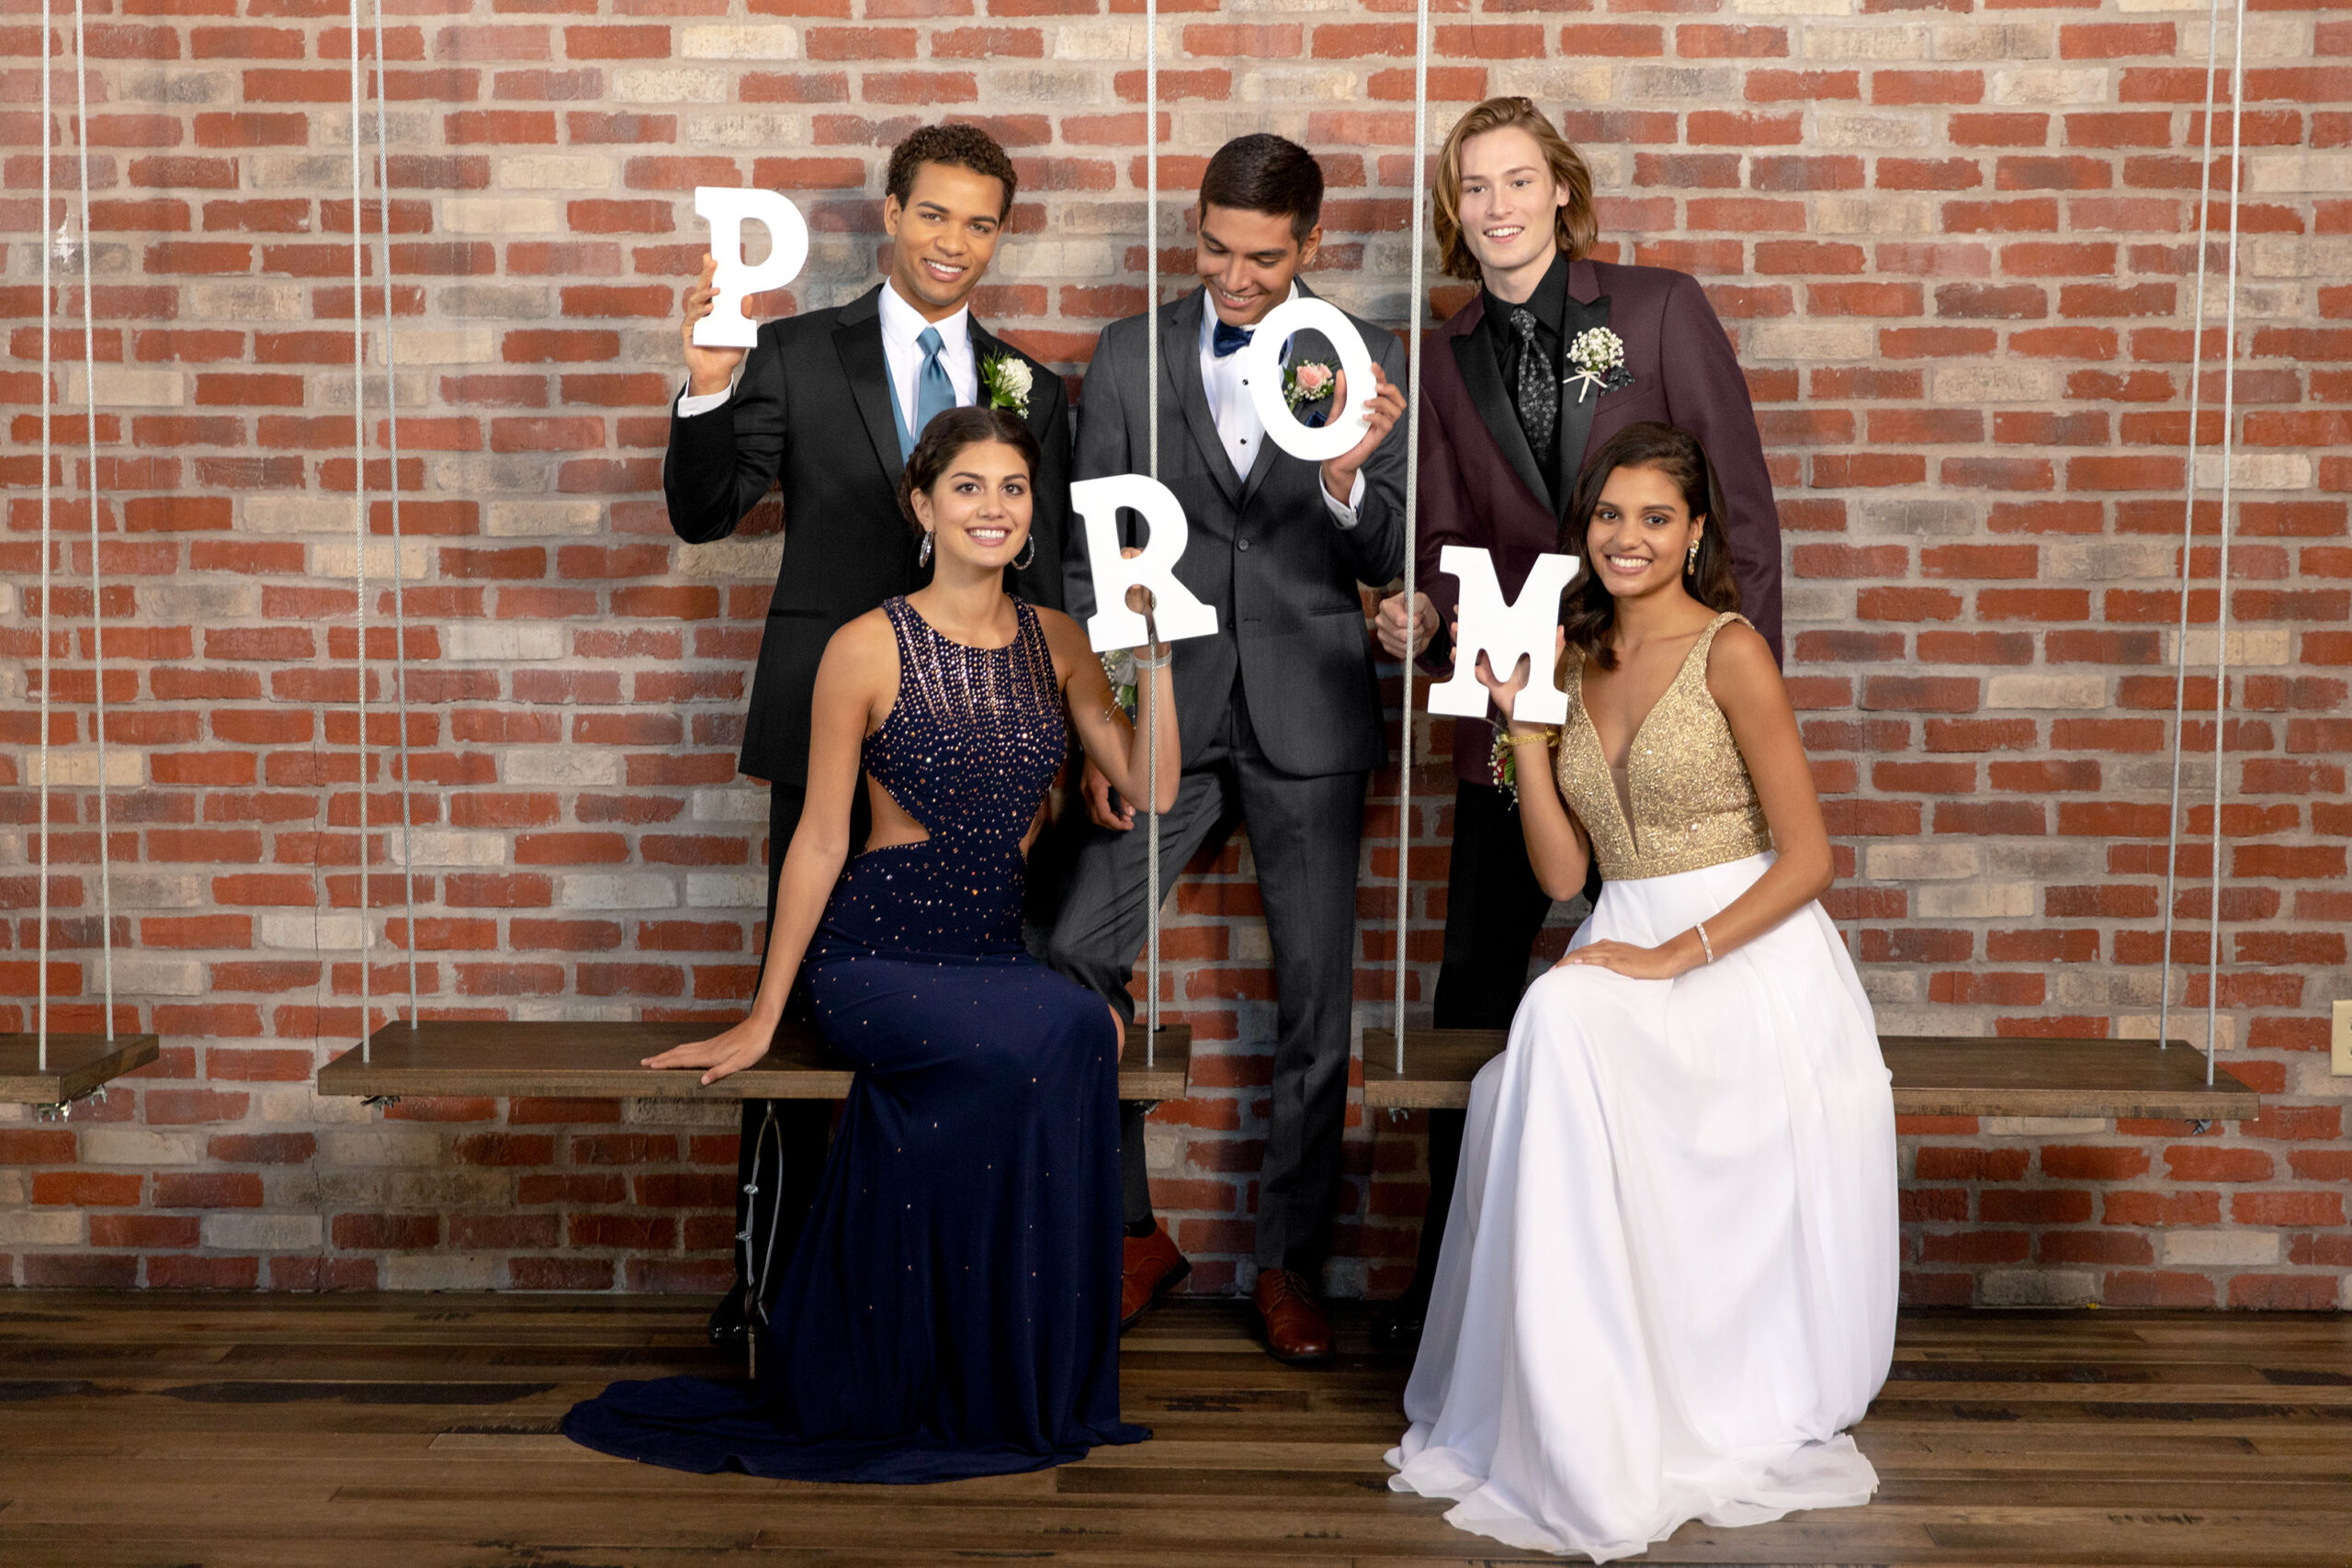 save money on prom - group of five prom kids with the guys in colorful tuxedos and the girls sitting on swings in front of them holding the letter P, R, O, M to spell prom